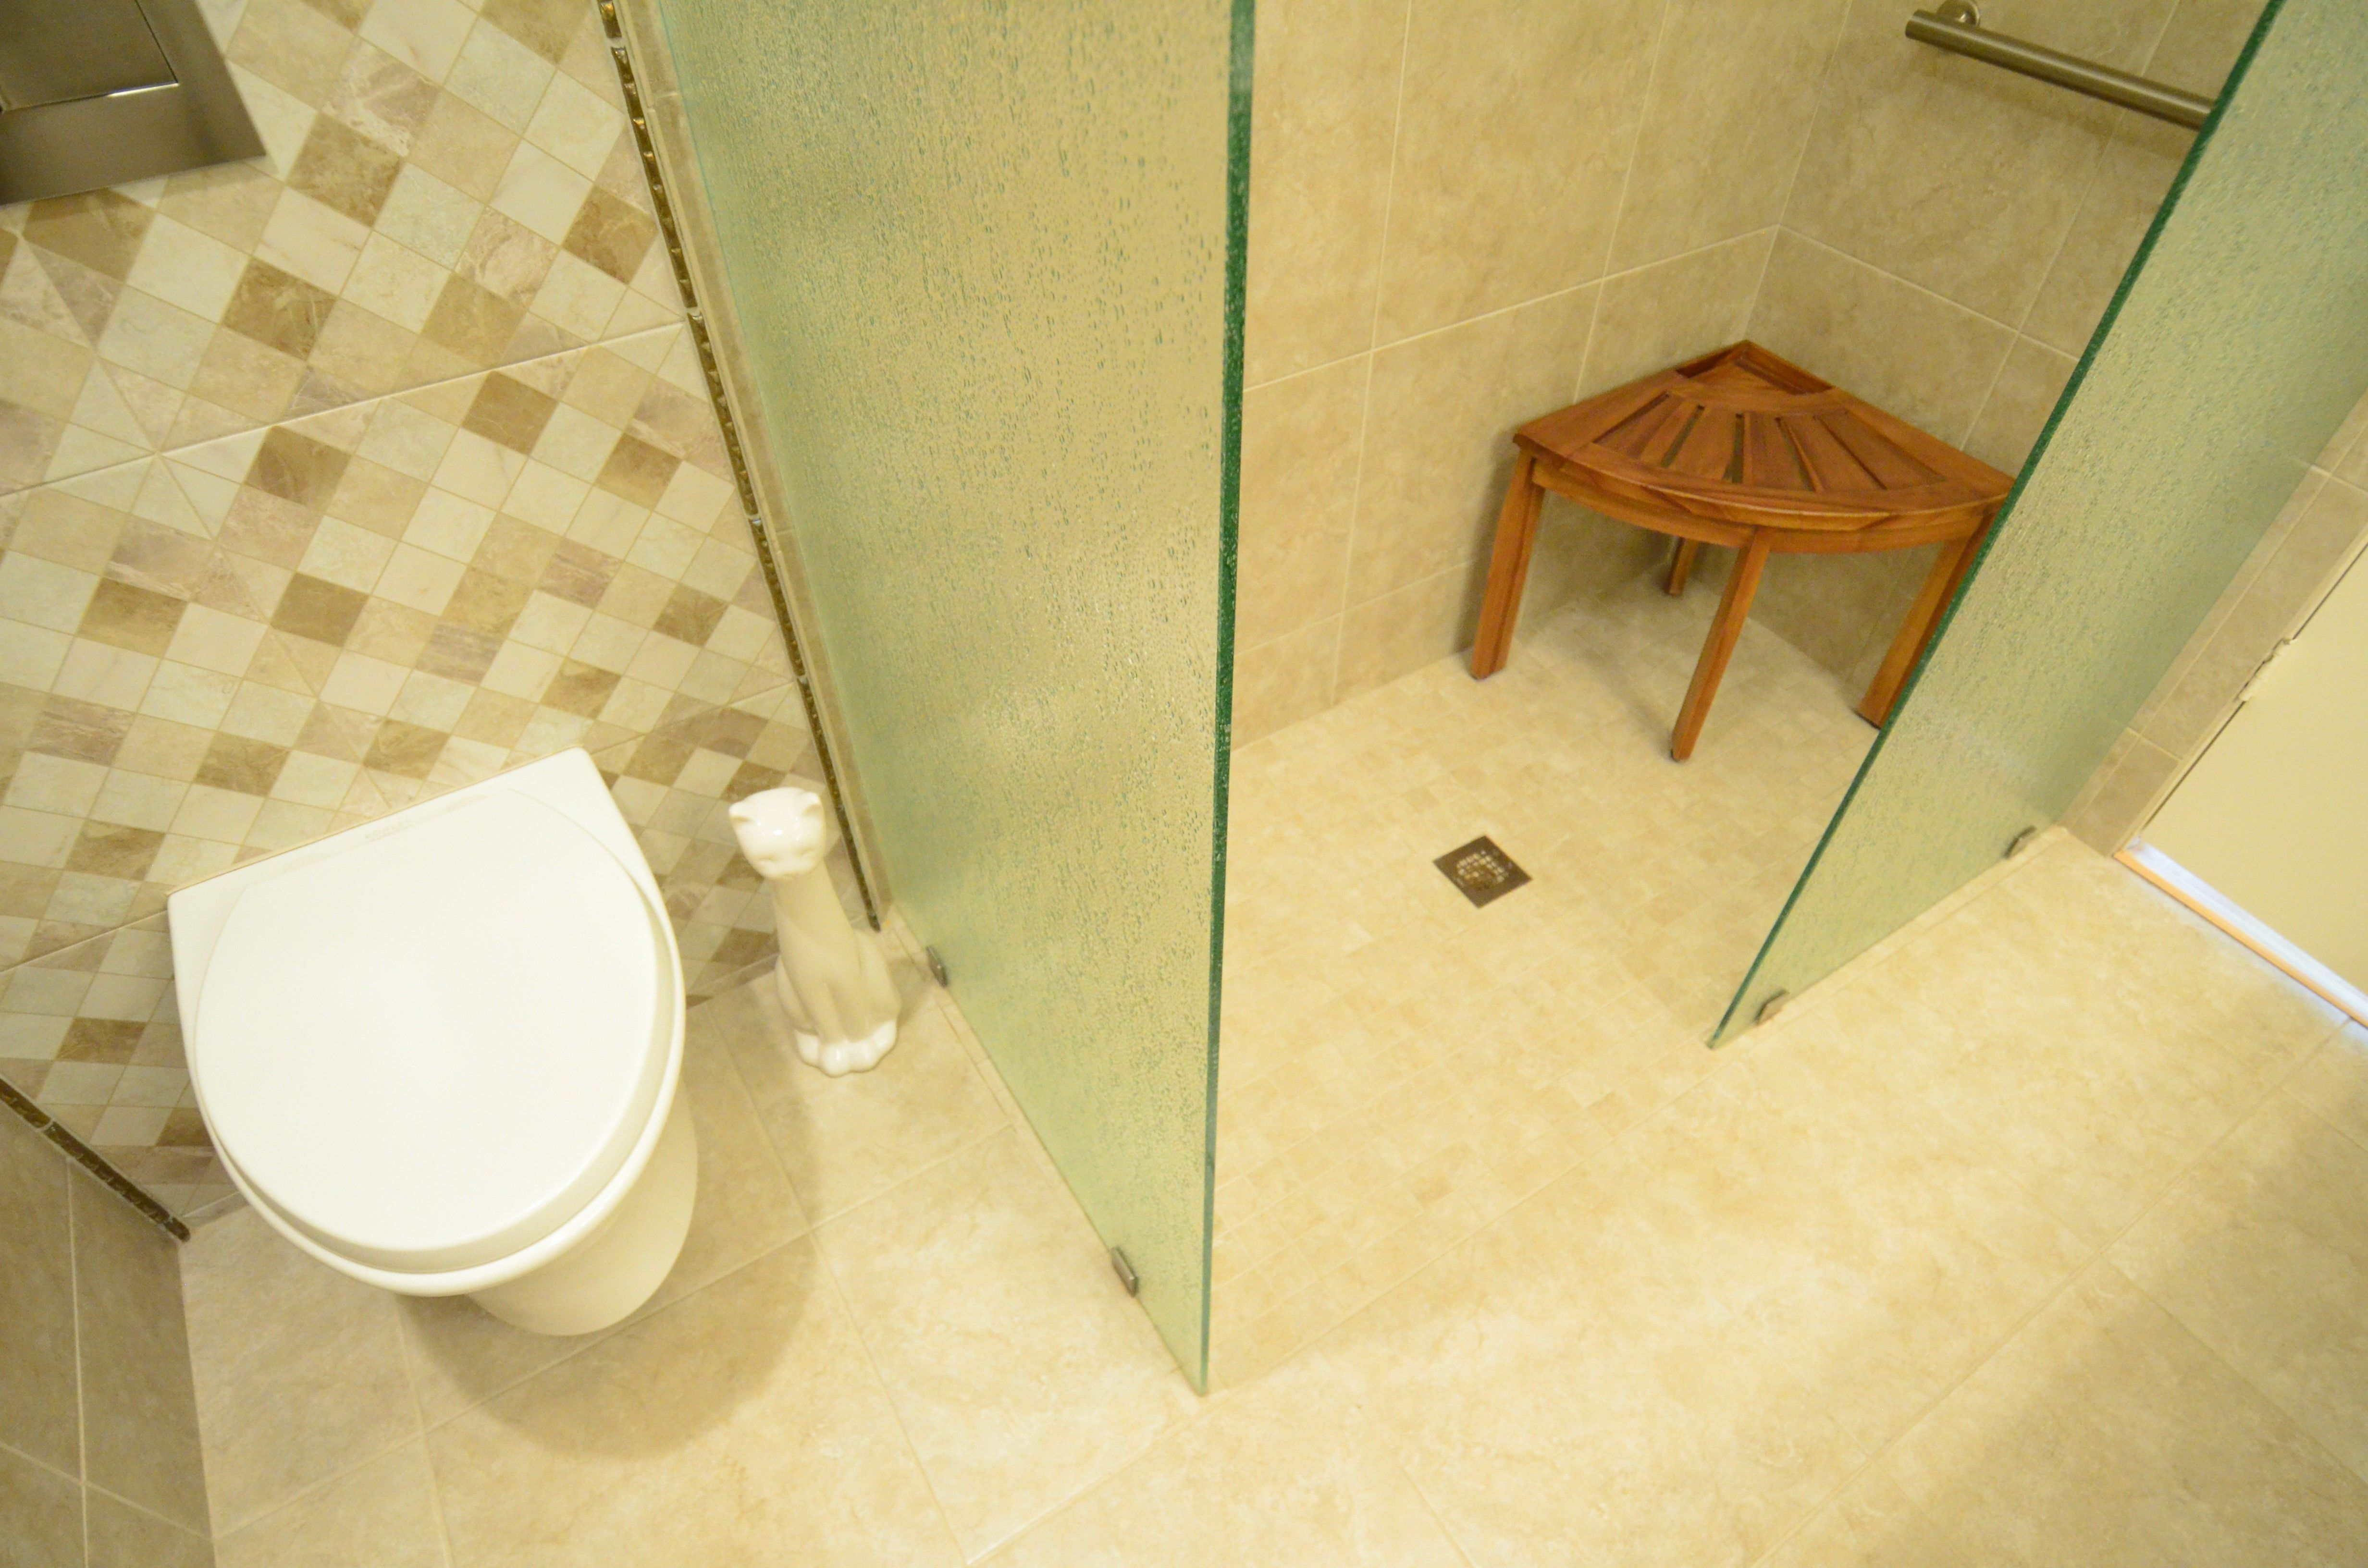 wall hung toilet allows for better clearance & cleaning, 2-stage ...